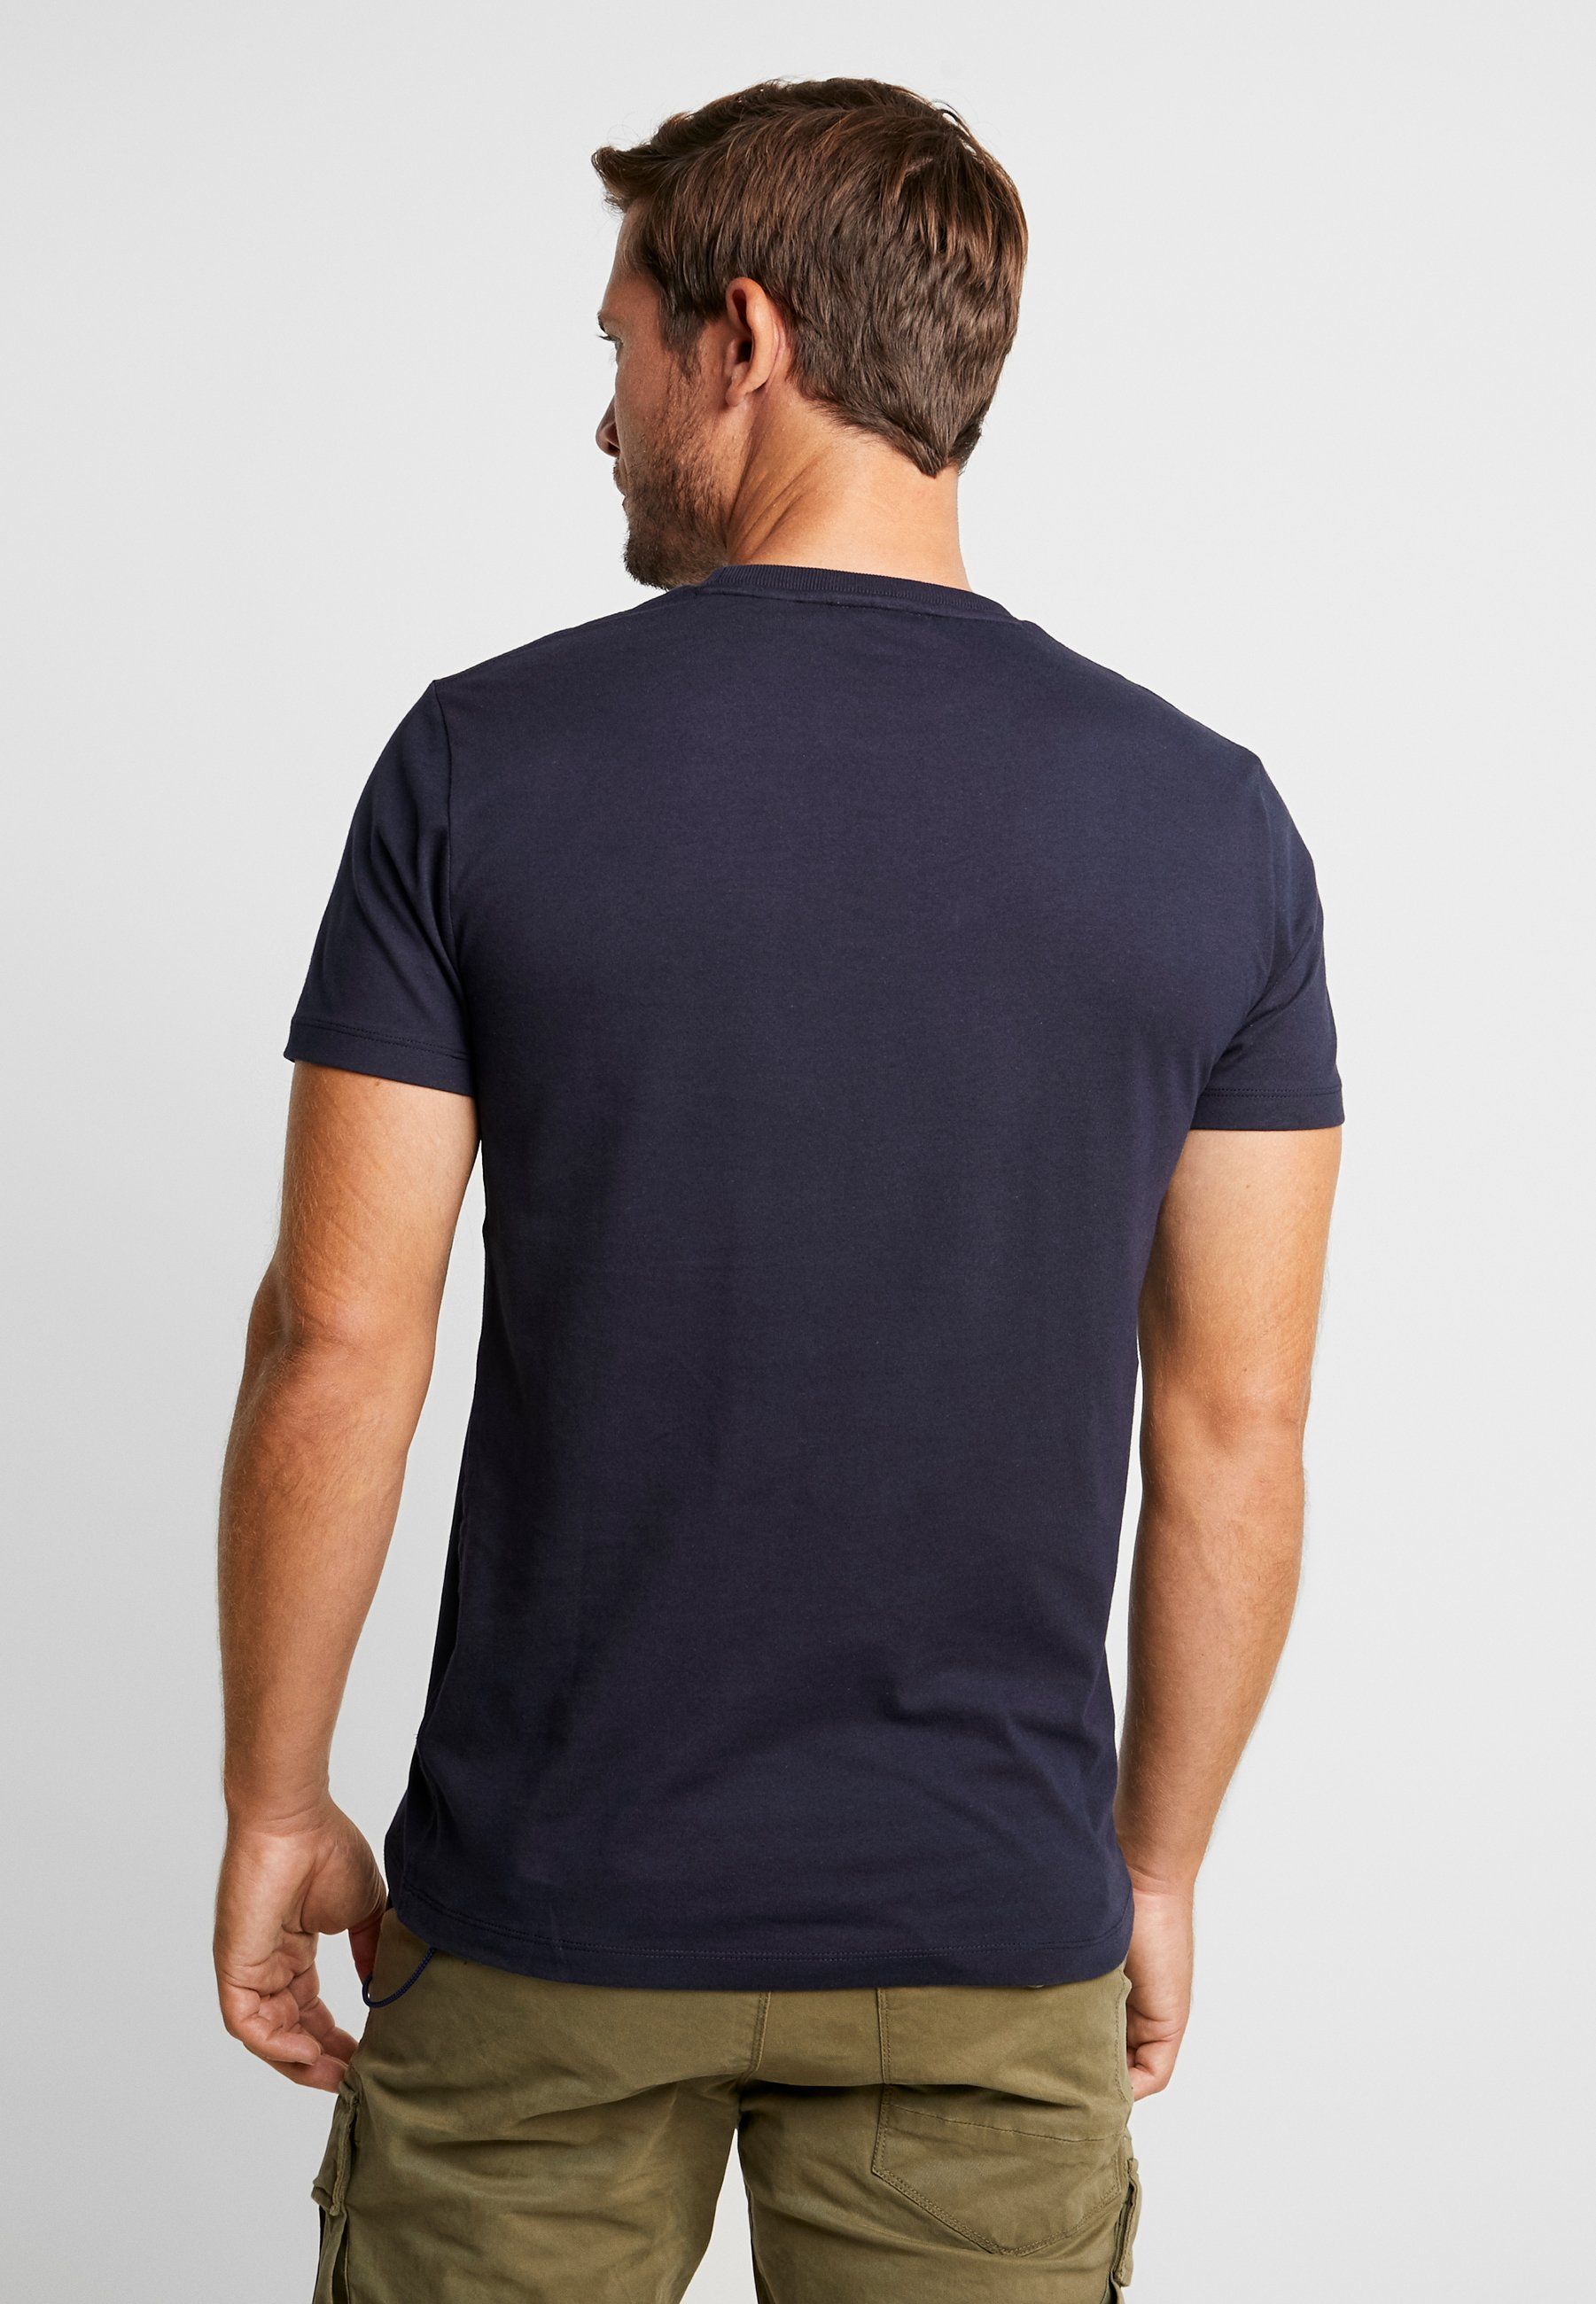 TeeT Navy Basique Box Superdry shirt Collective edBrxoC